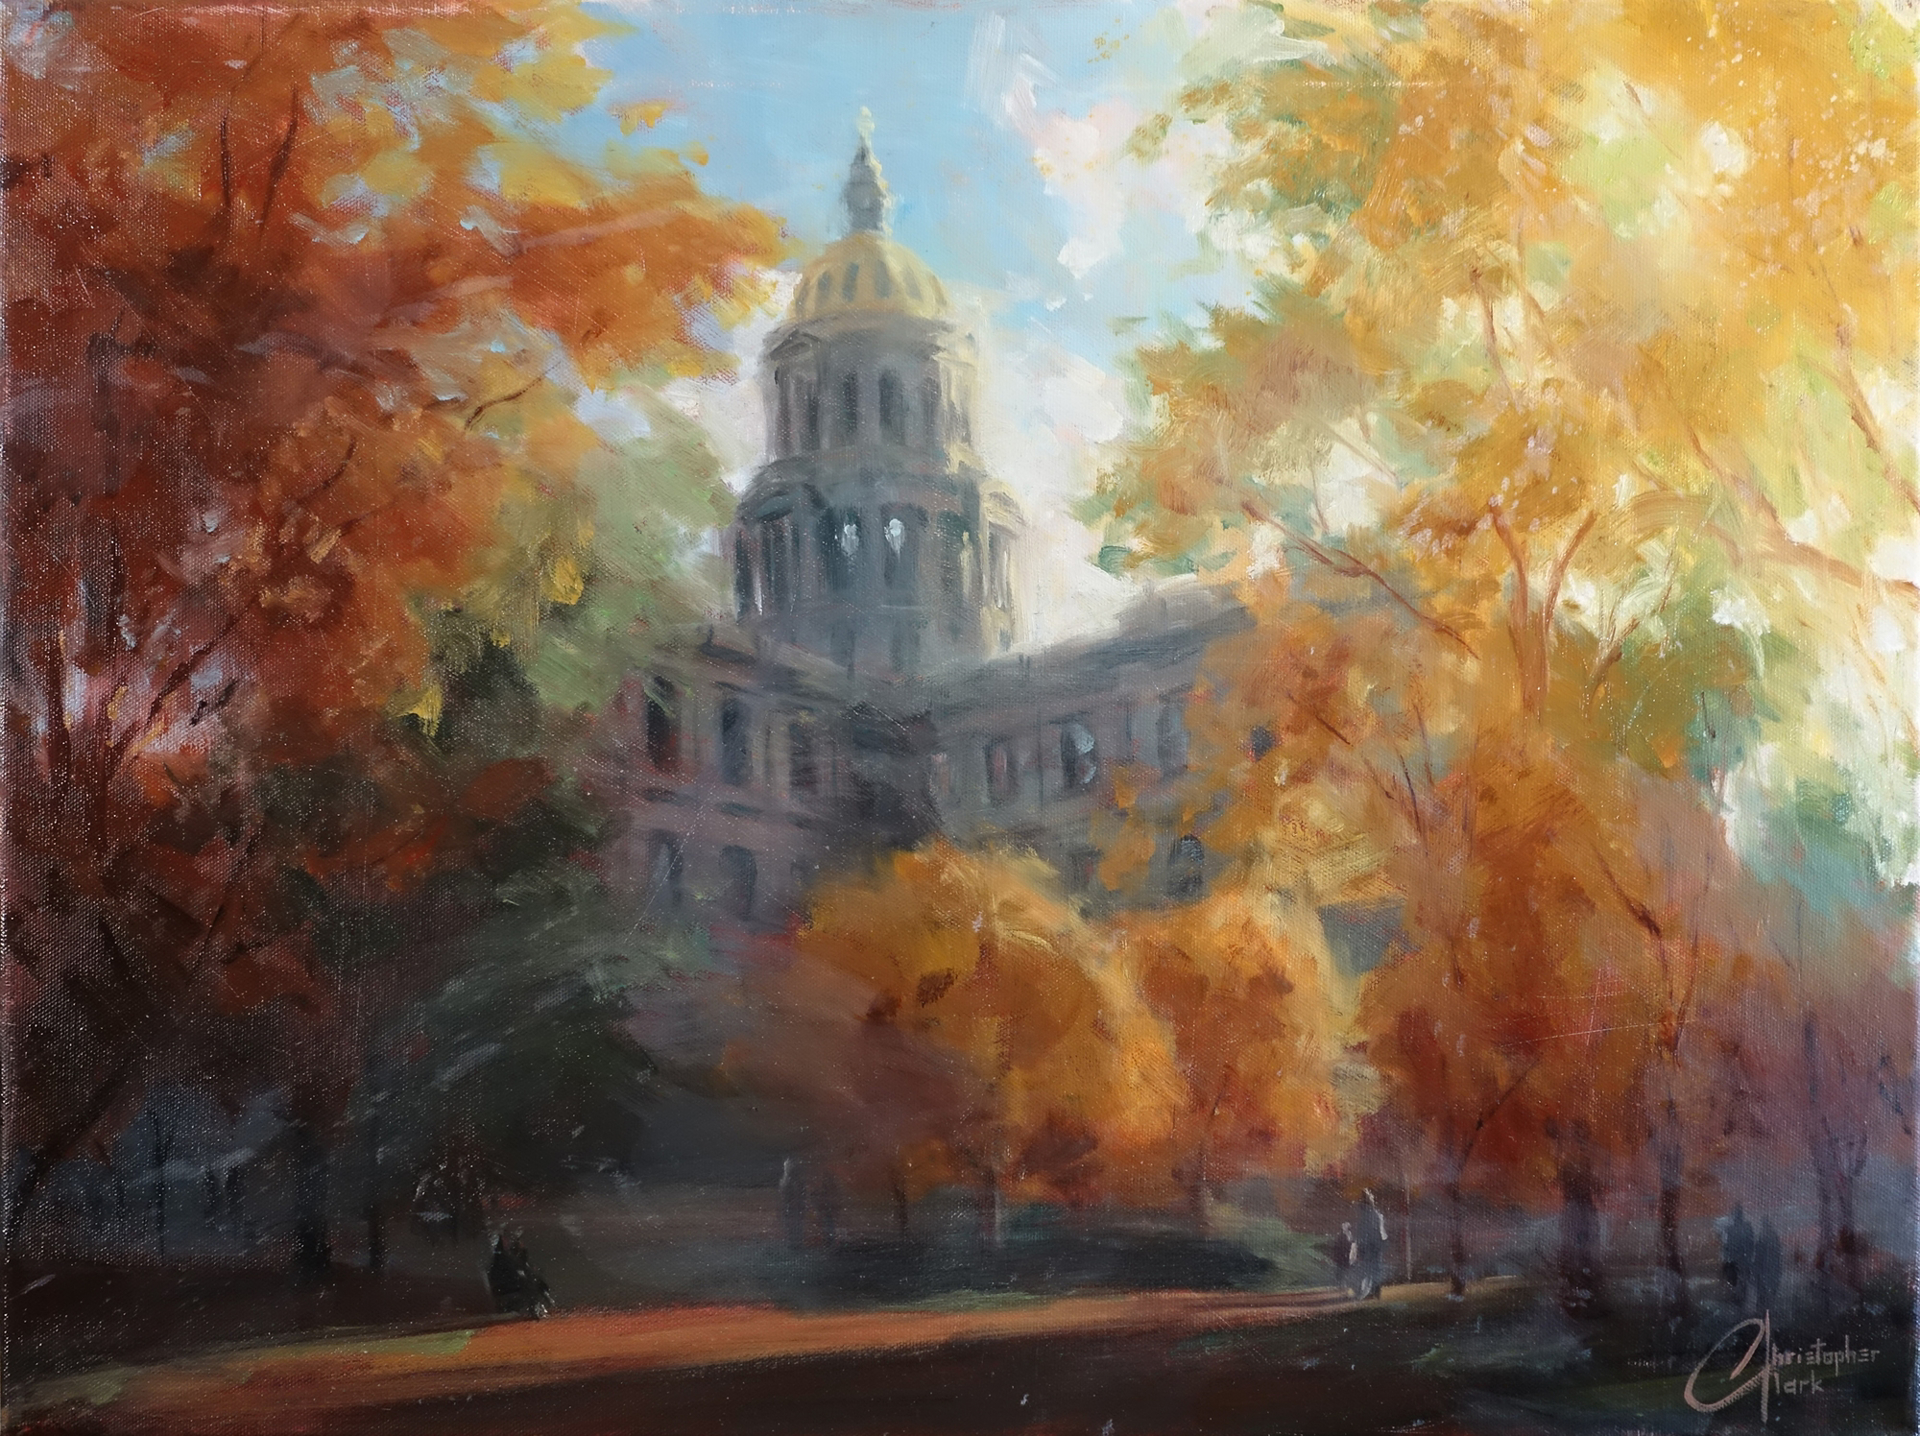 Denver Capitol Building in Autumn by Christopher Clark